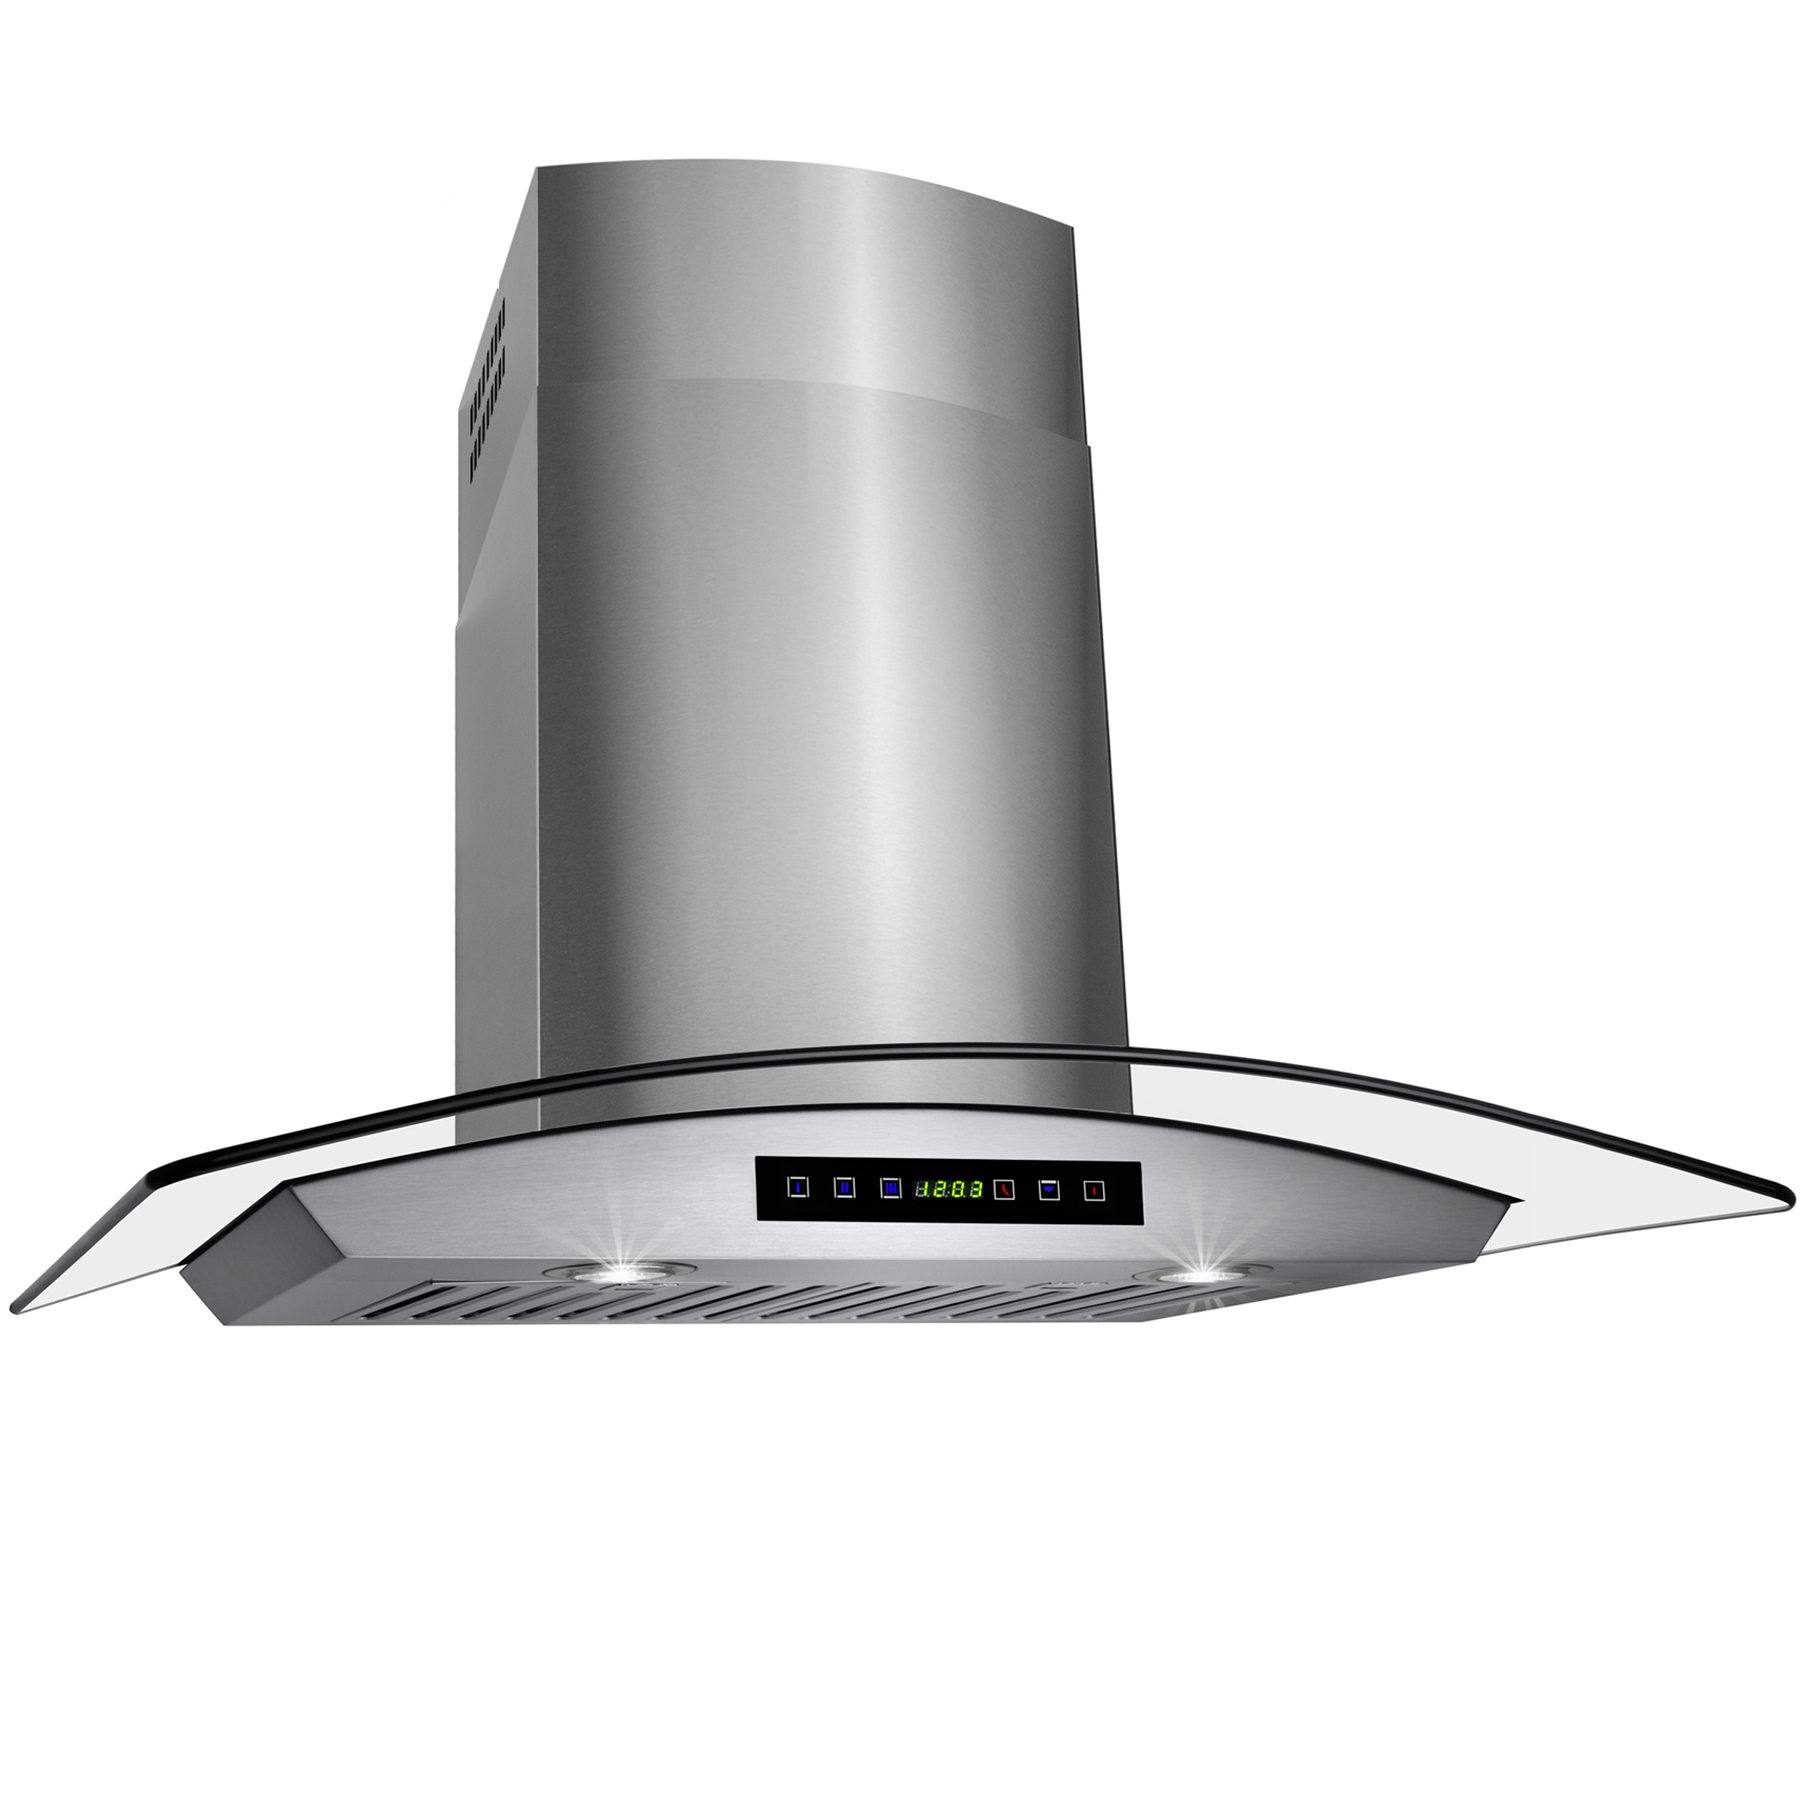 """Image of AKDY 36"""" Stainless Steel Wall Mount Range Hood with Tempered Glass & Touch Control Panel"""